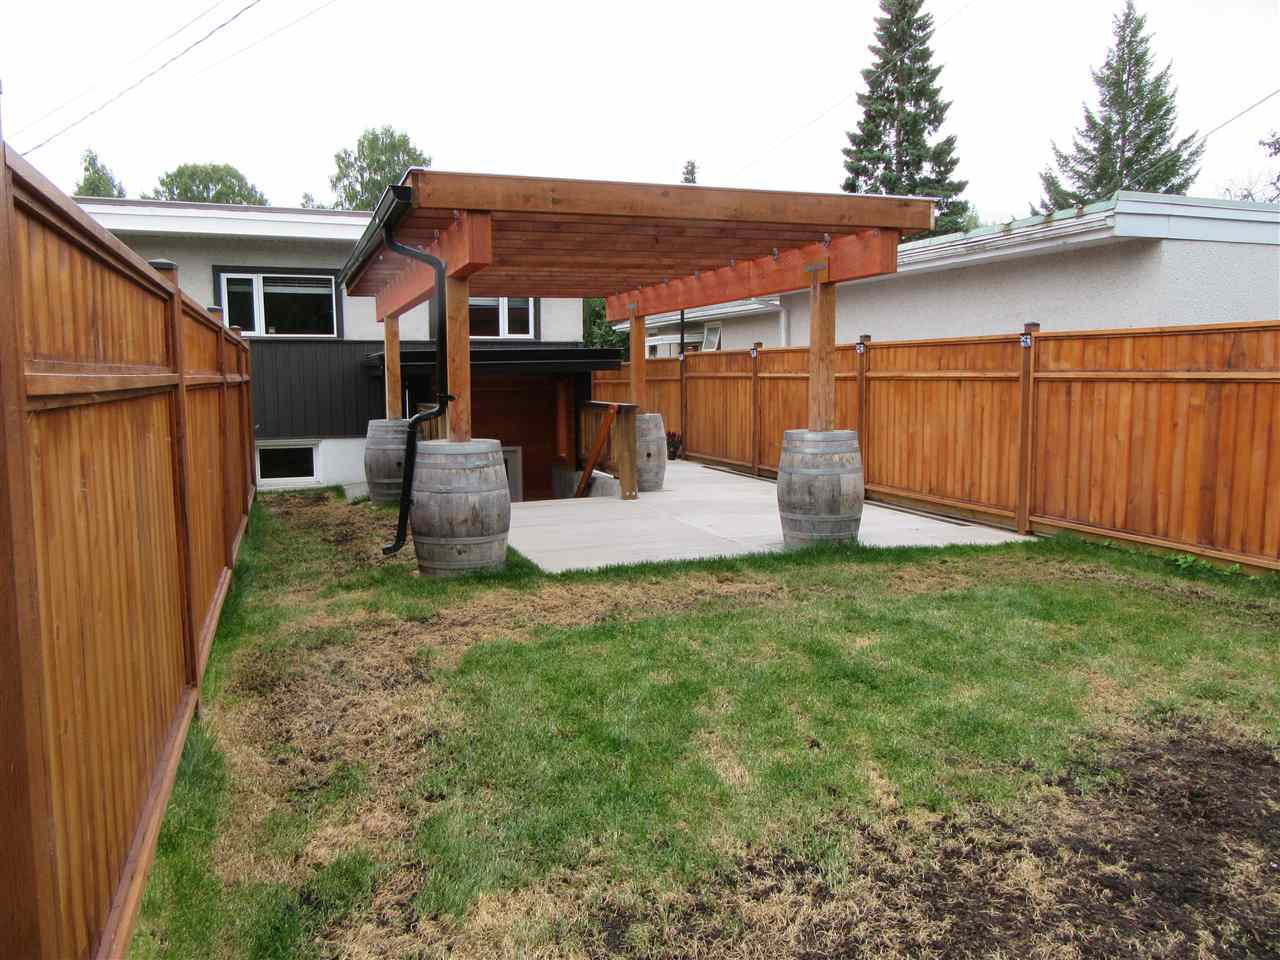 """Photo 4: Photos: 121 FREEMAN Street in Prince George: Nechako View House for sale in """"NECHAKO"""" (PG City Central (Zone 72))  : MLS®# R2493268"""